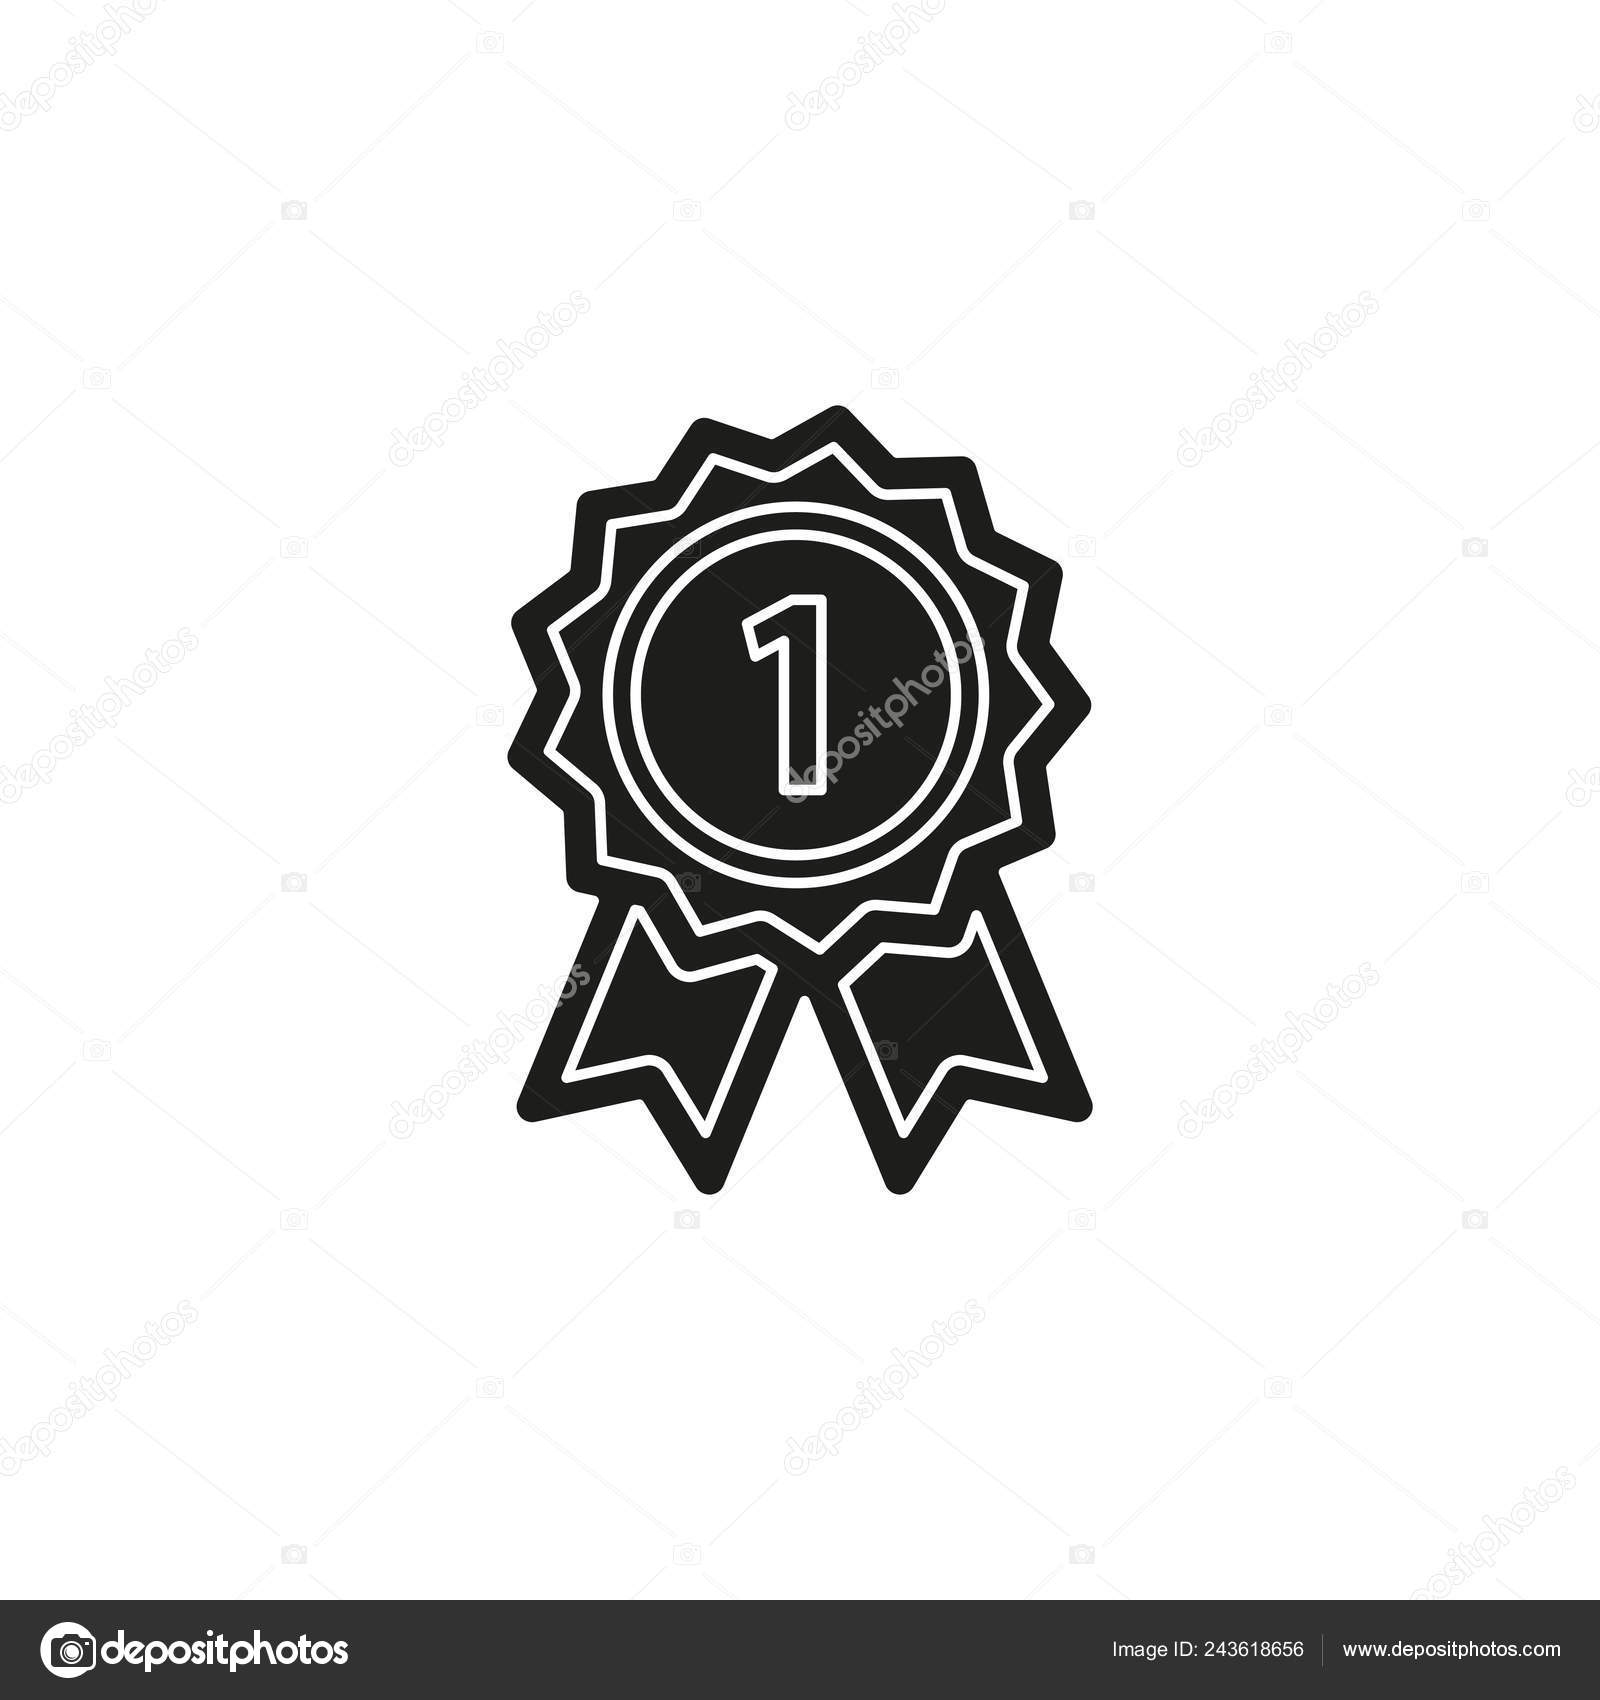 winner icon gold prize vector prize champion emblem success symbol stock vector c german98 243618656 winner icon gold prize vector prize champion emblem success symbol stock vector c german98 243618656